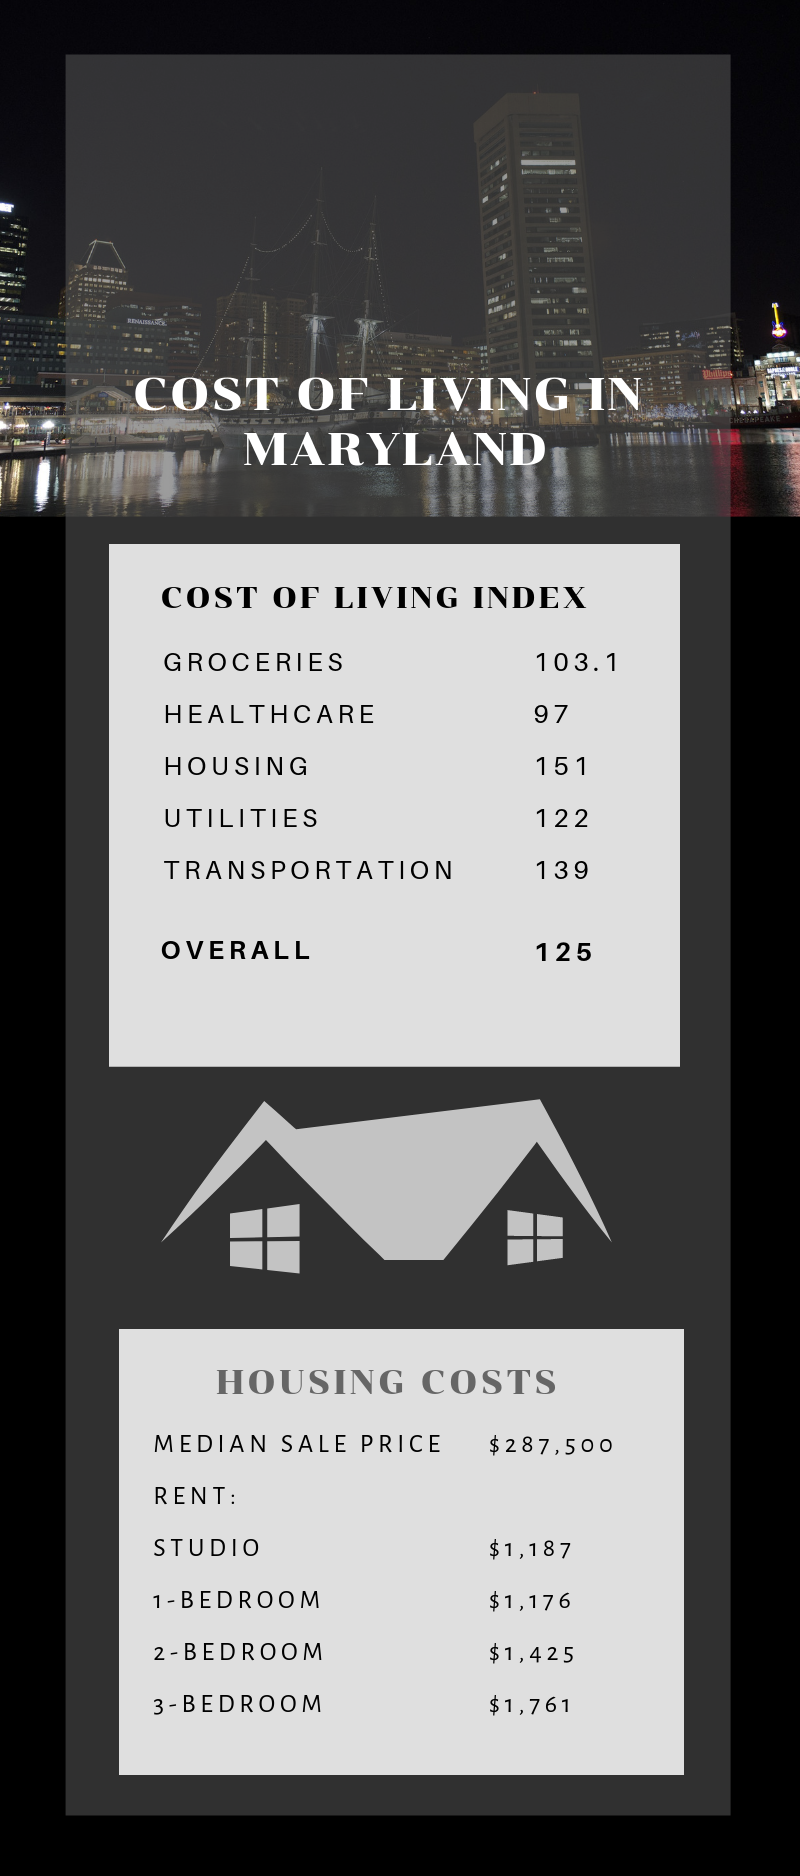 Infographic Showing the Cost of Living Index for Maryland